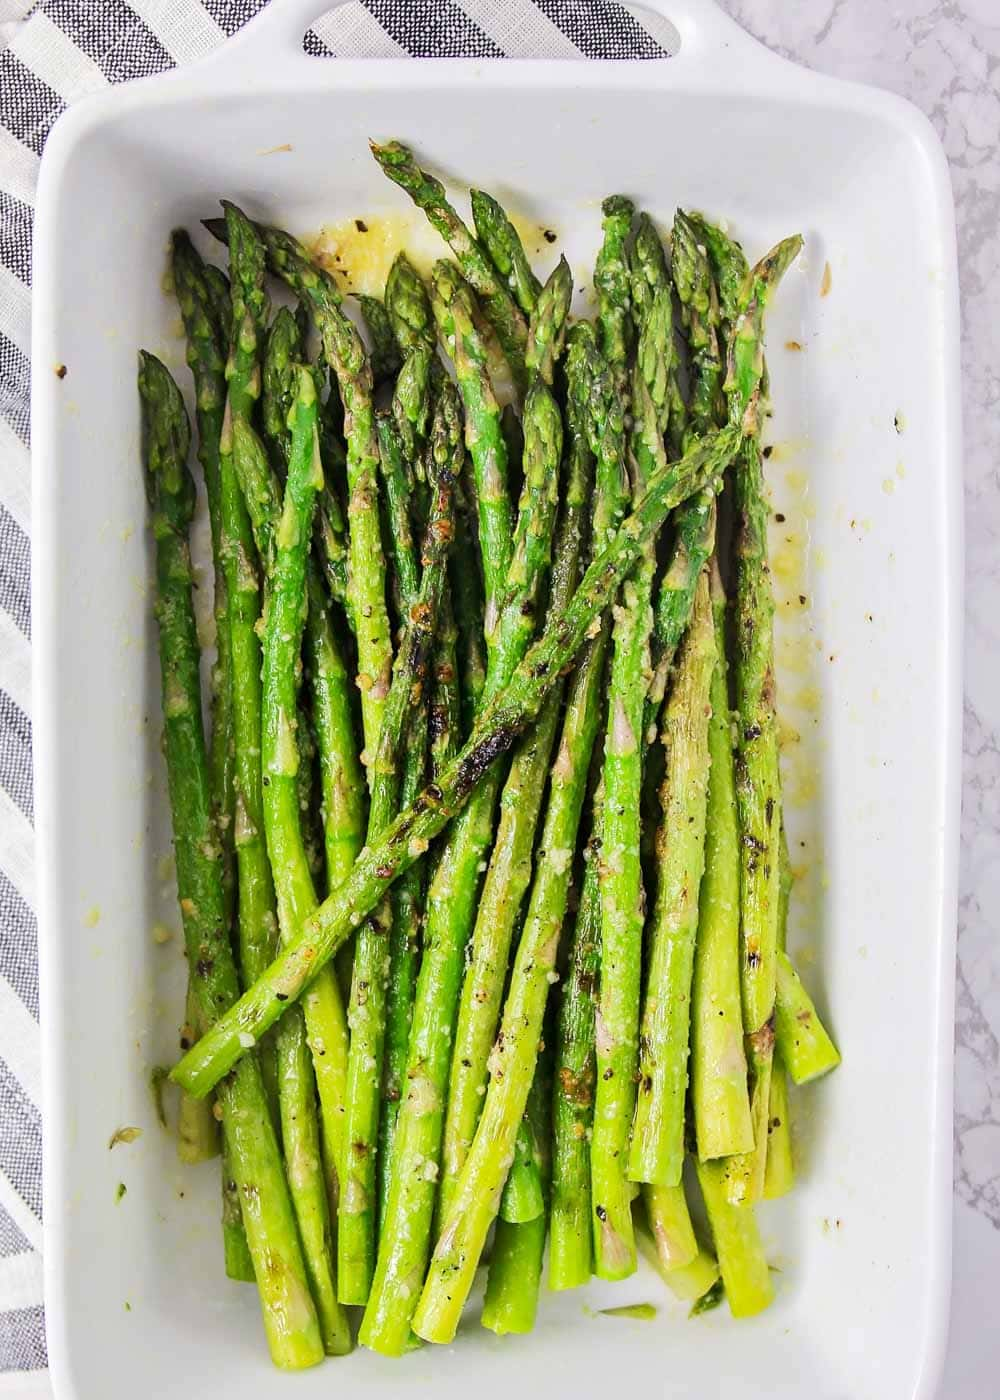 Grilled asparagus recipe in a white serving dish